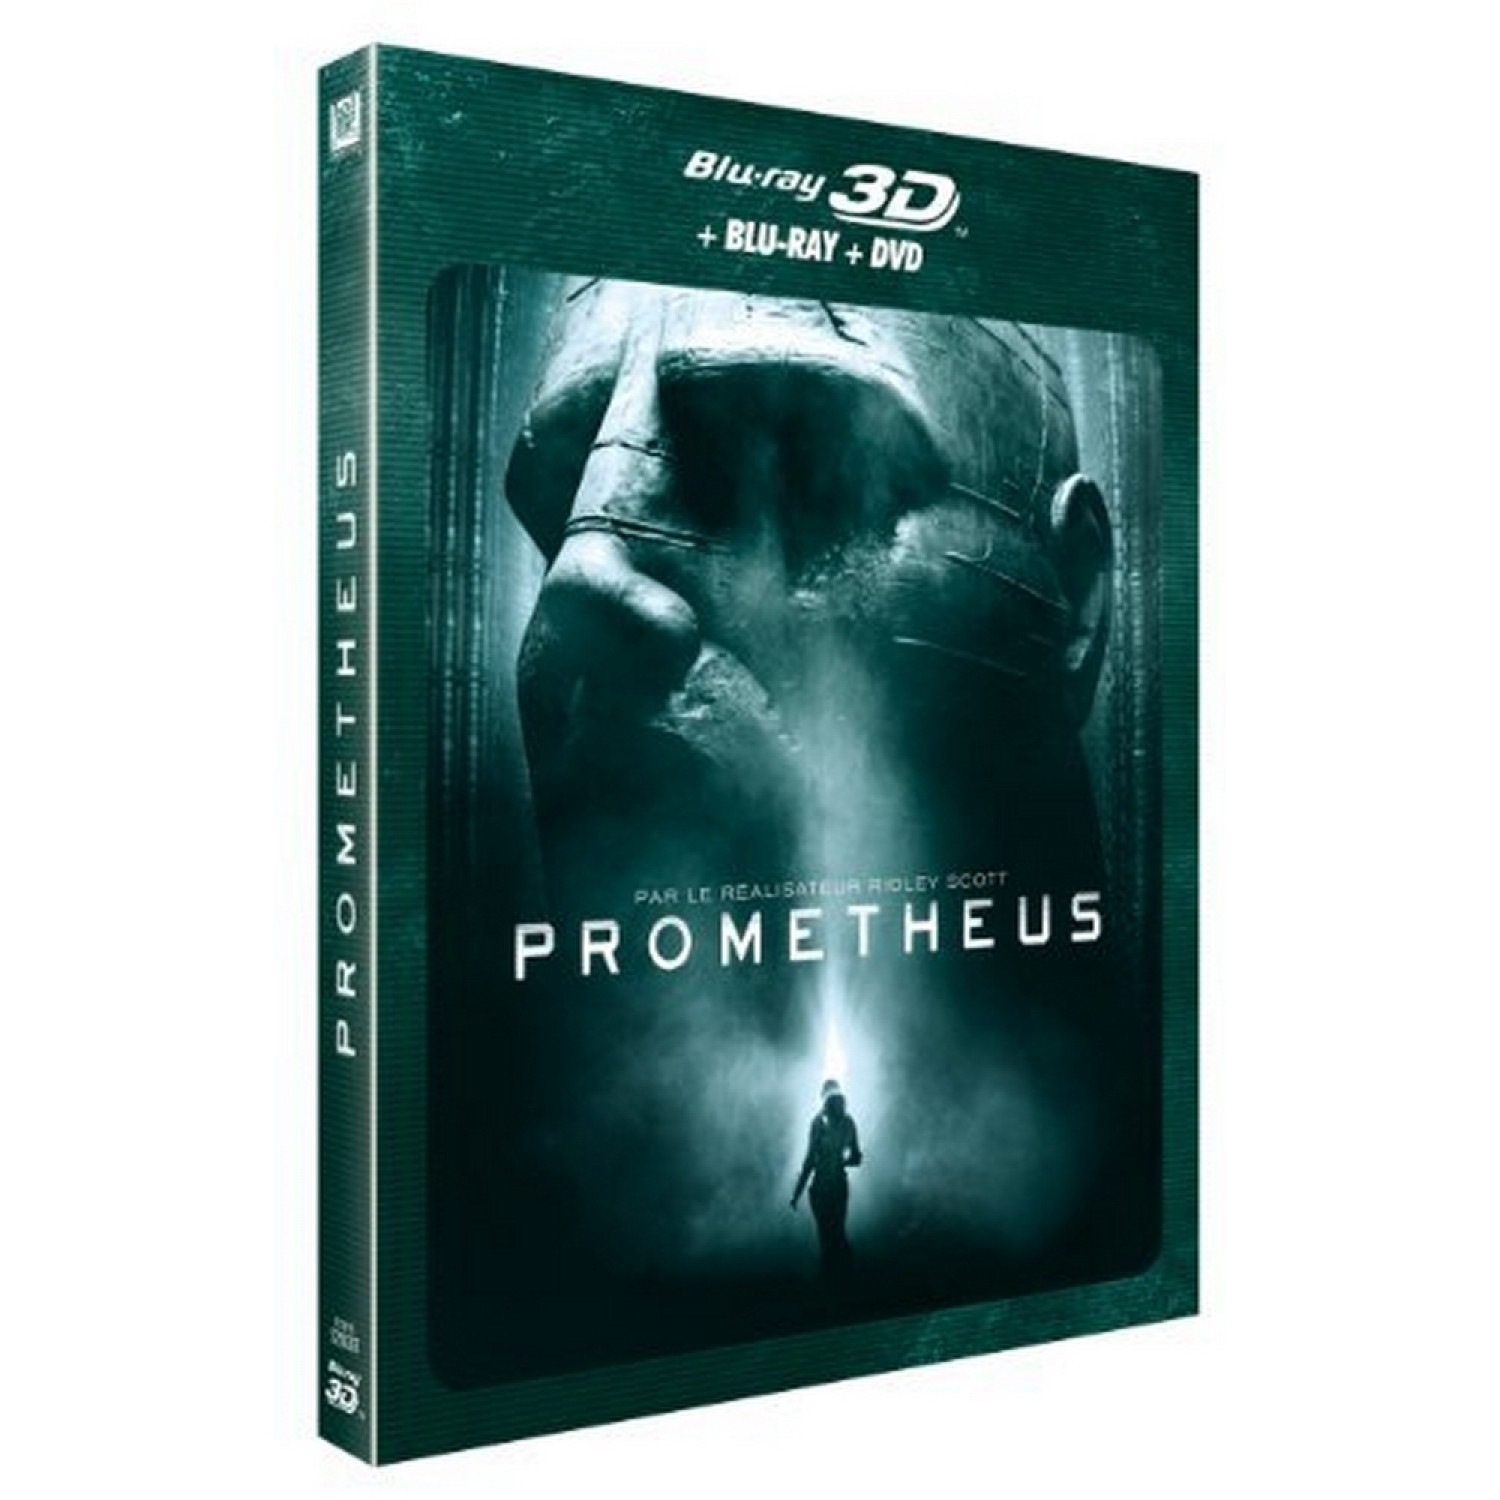 Prometheus 3d [blu-ray 3d]